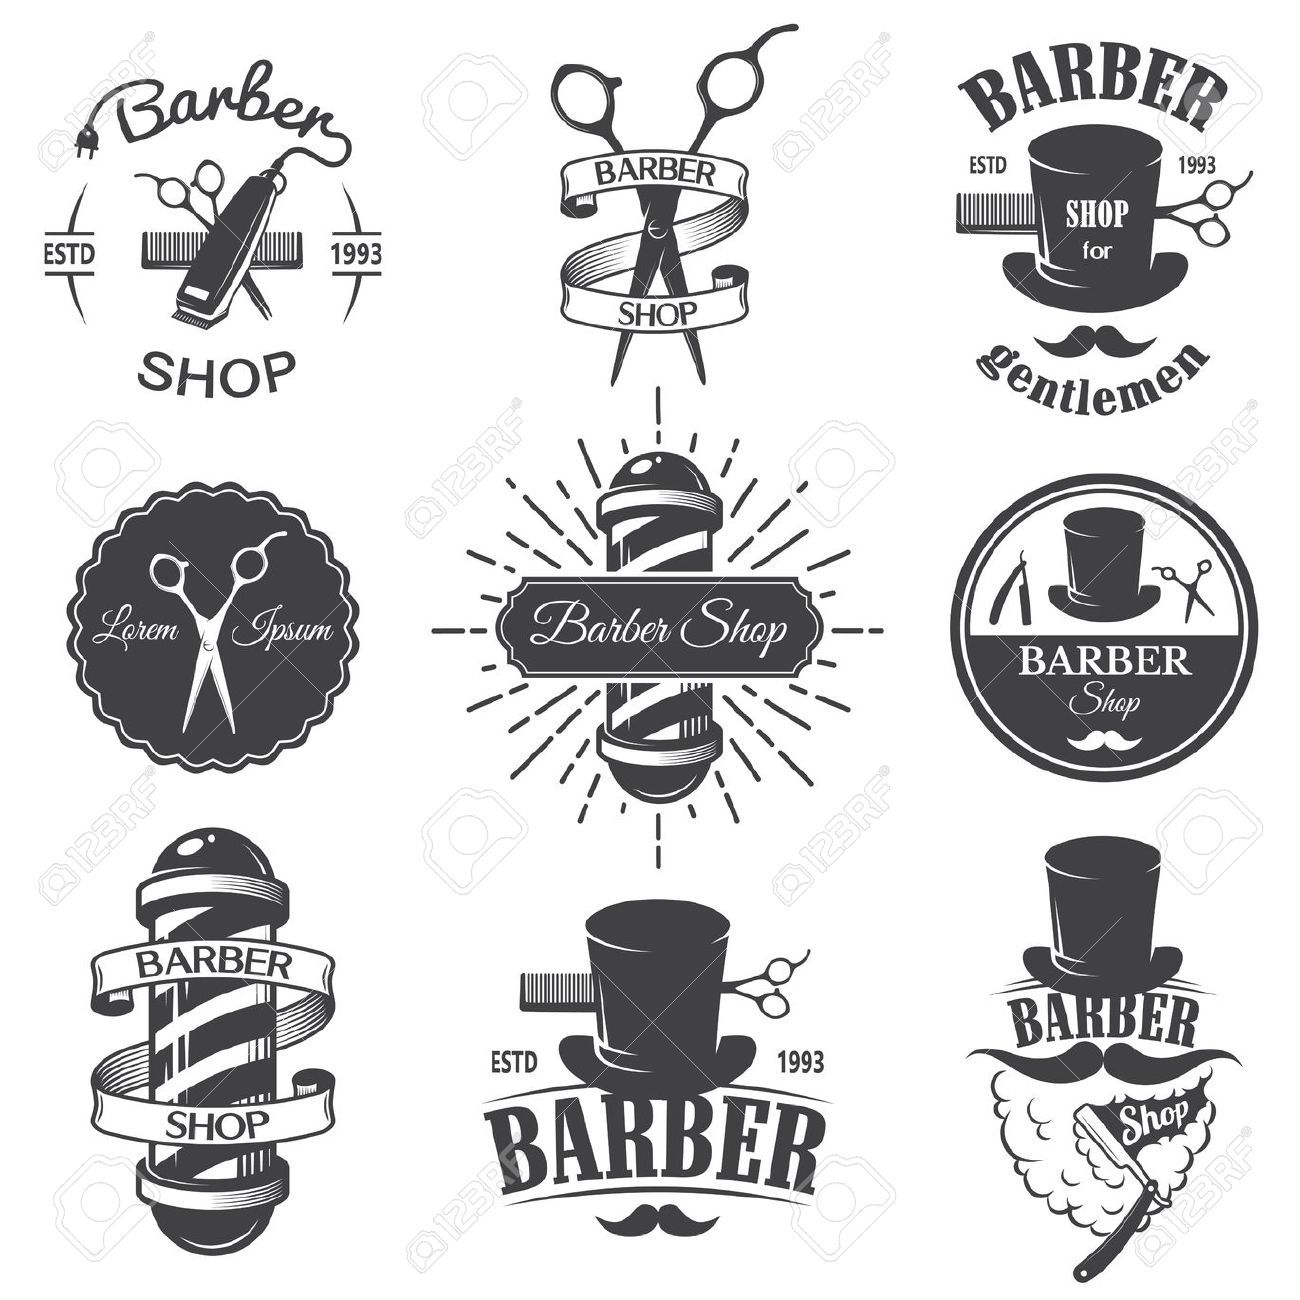 Vintage barber clipart transparent library Stock Vector | Barbershop in 2019 | Barber shop, Barber ... transparent library